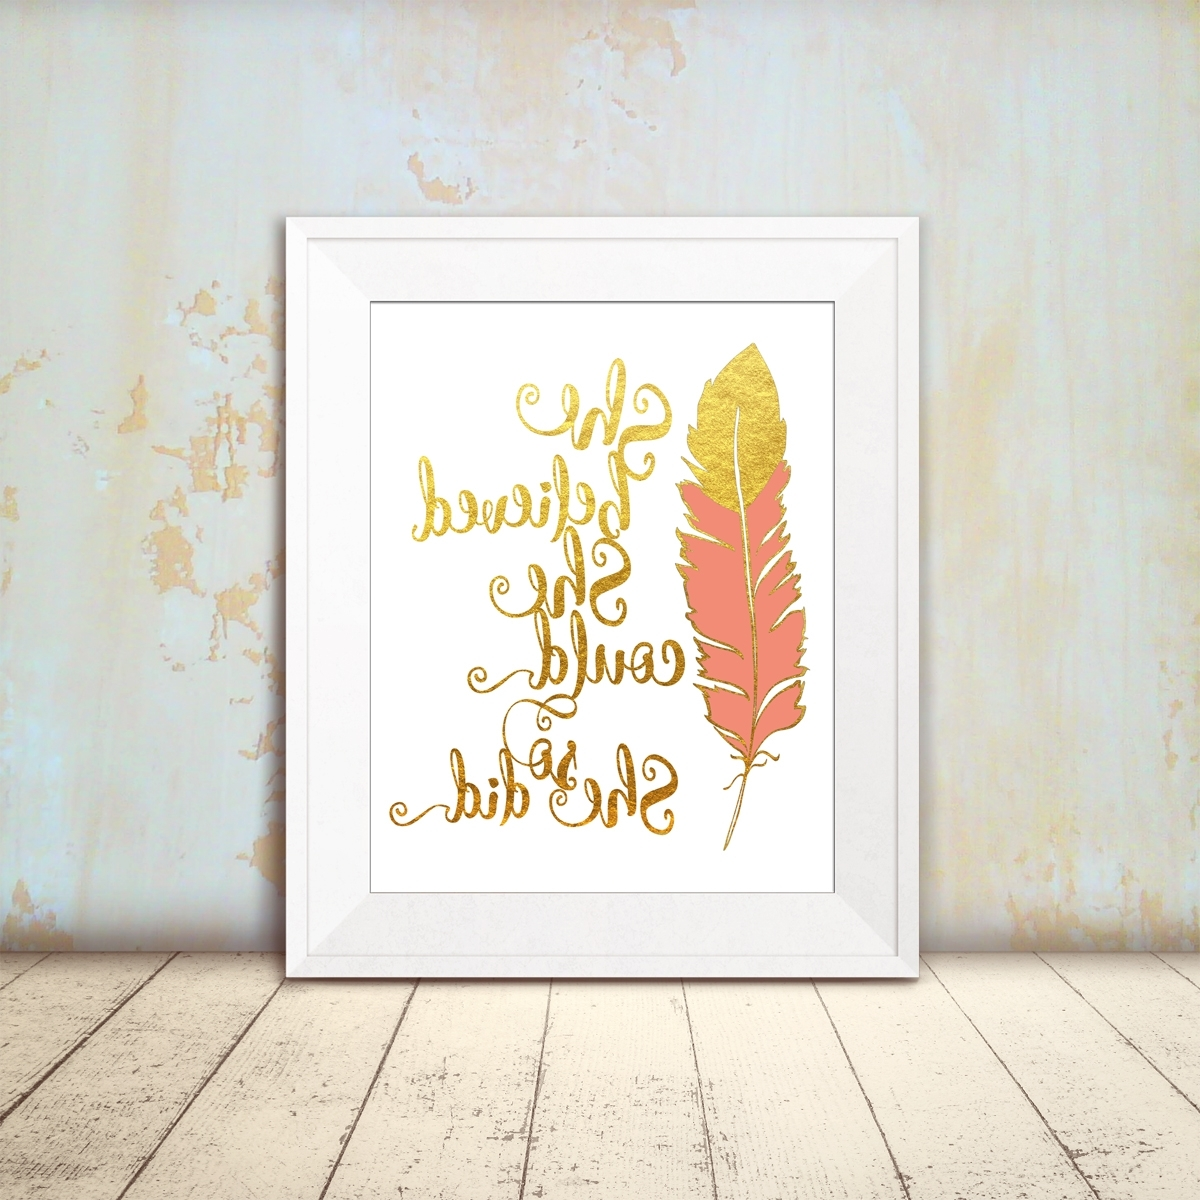 She Believed Inspirational Feather Print For Well Liked She Believed She Could So She Did Wall Art (View 3 of 15)